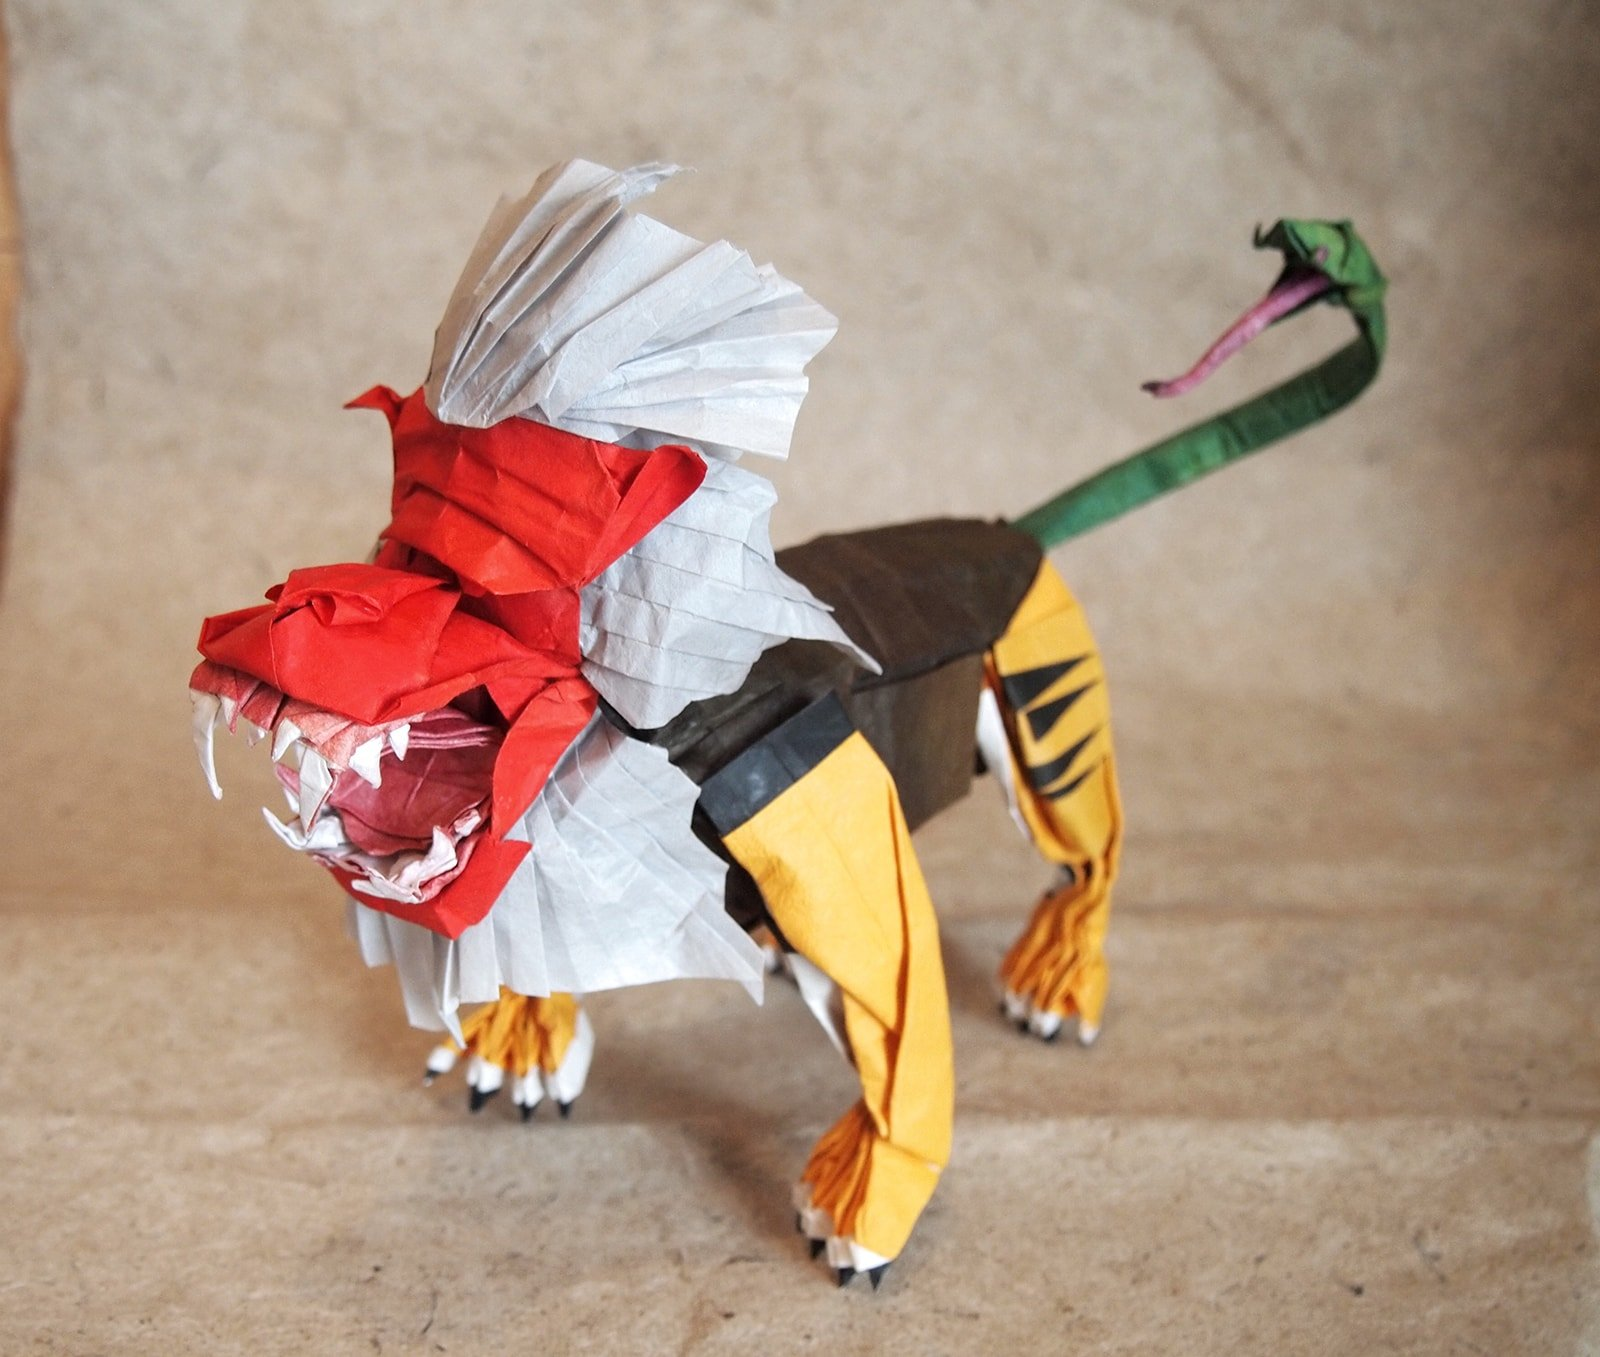 Amazing Mythological Origami Creations You Have To See To